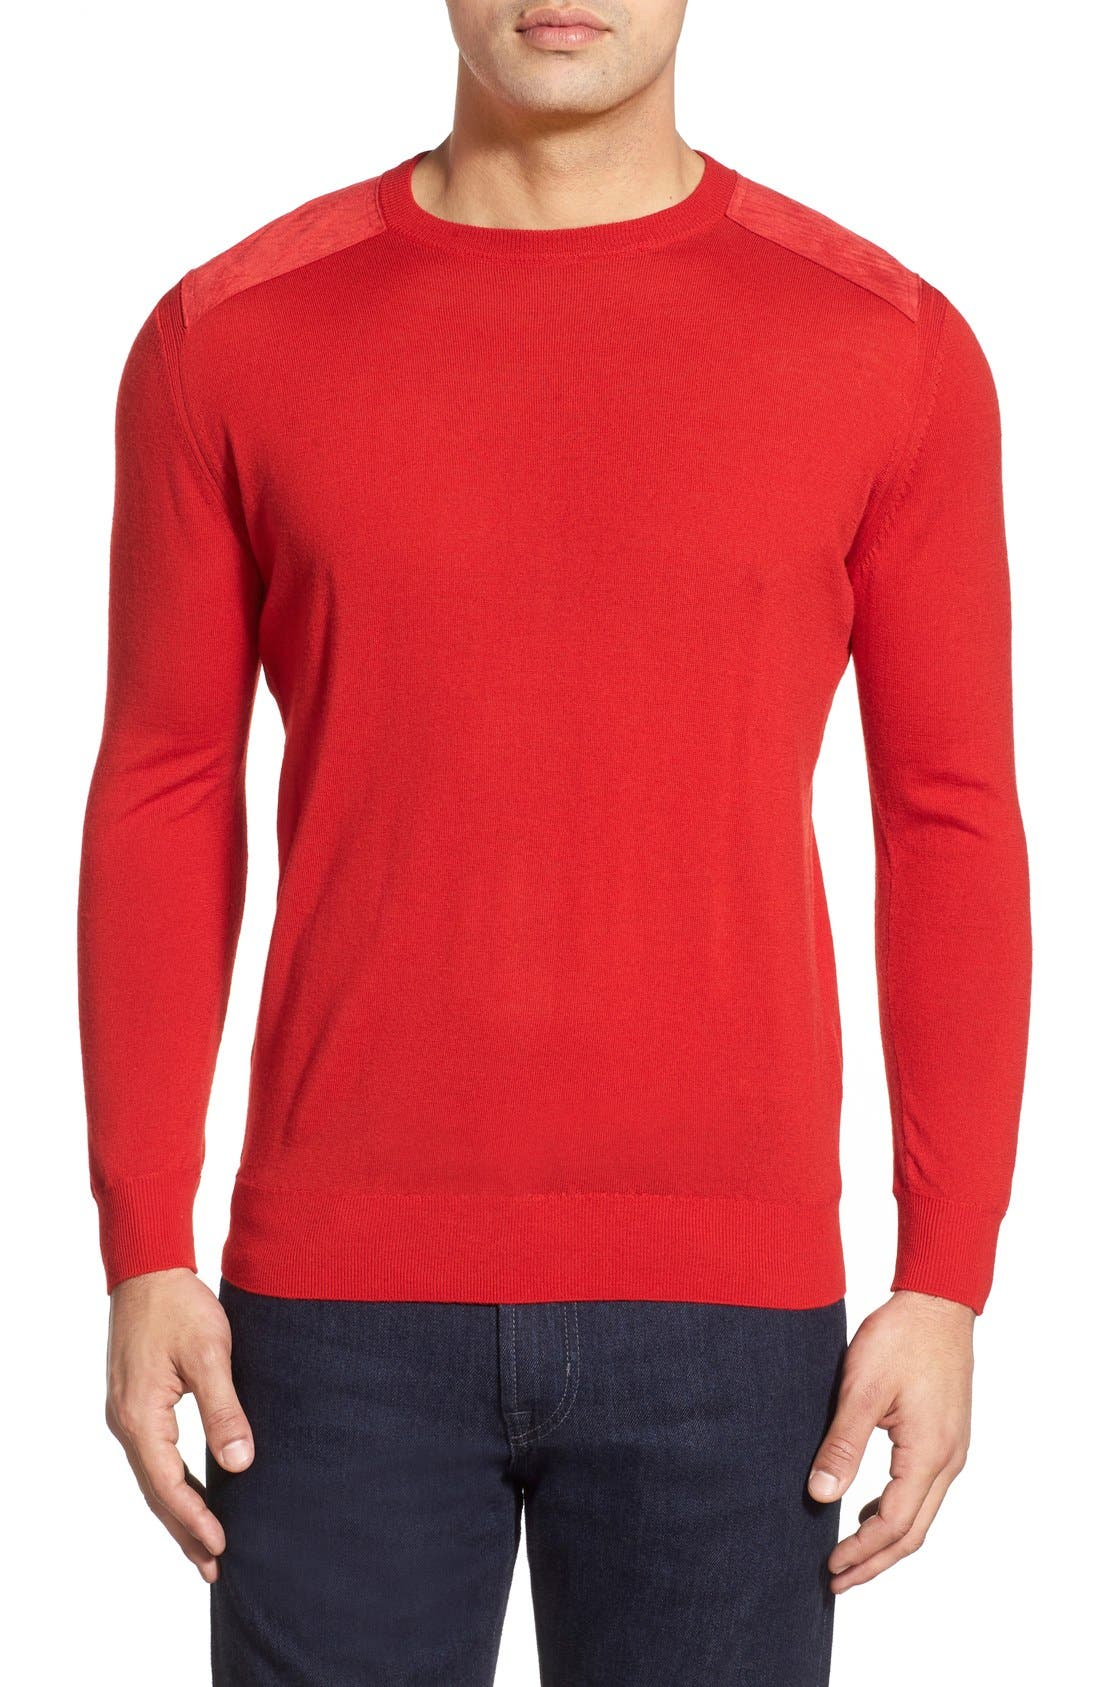 Regular Fit Crewneck Sweater,                             Main thumbnail 1, color,                             Cherry